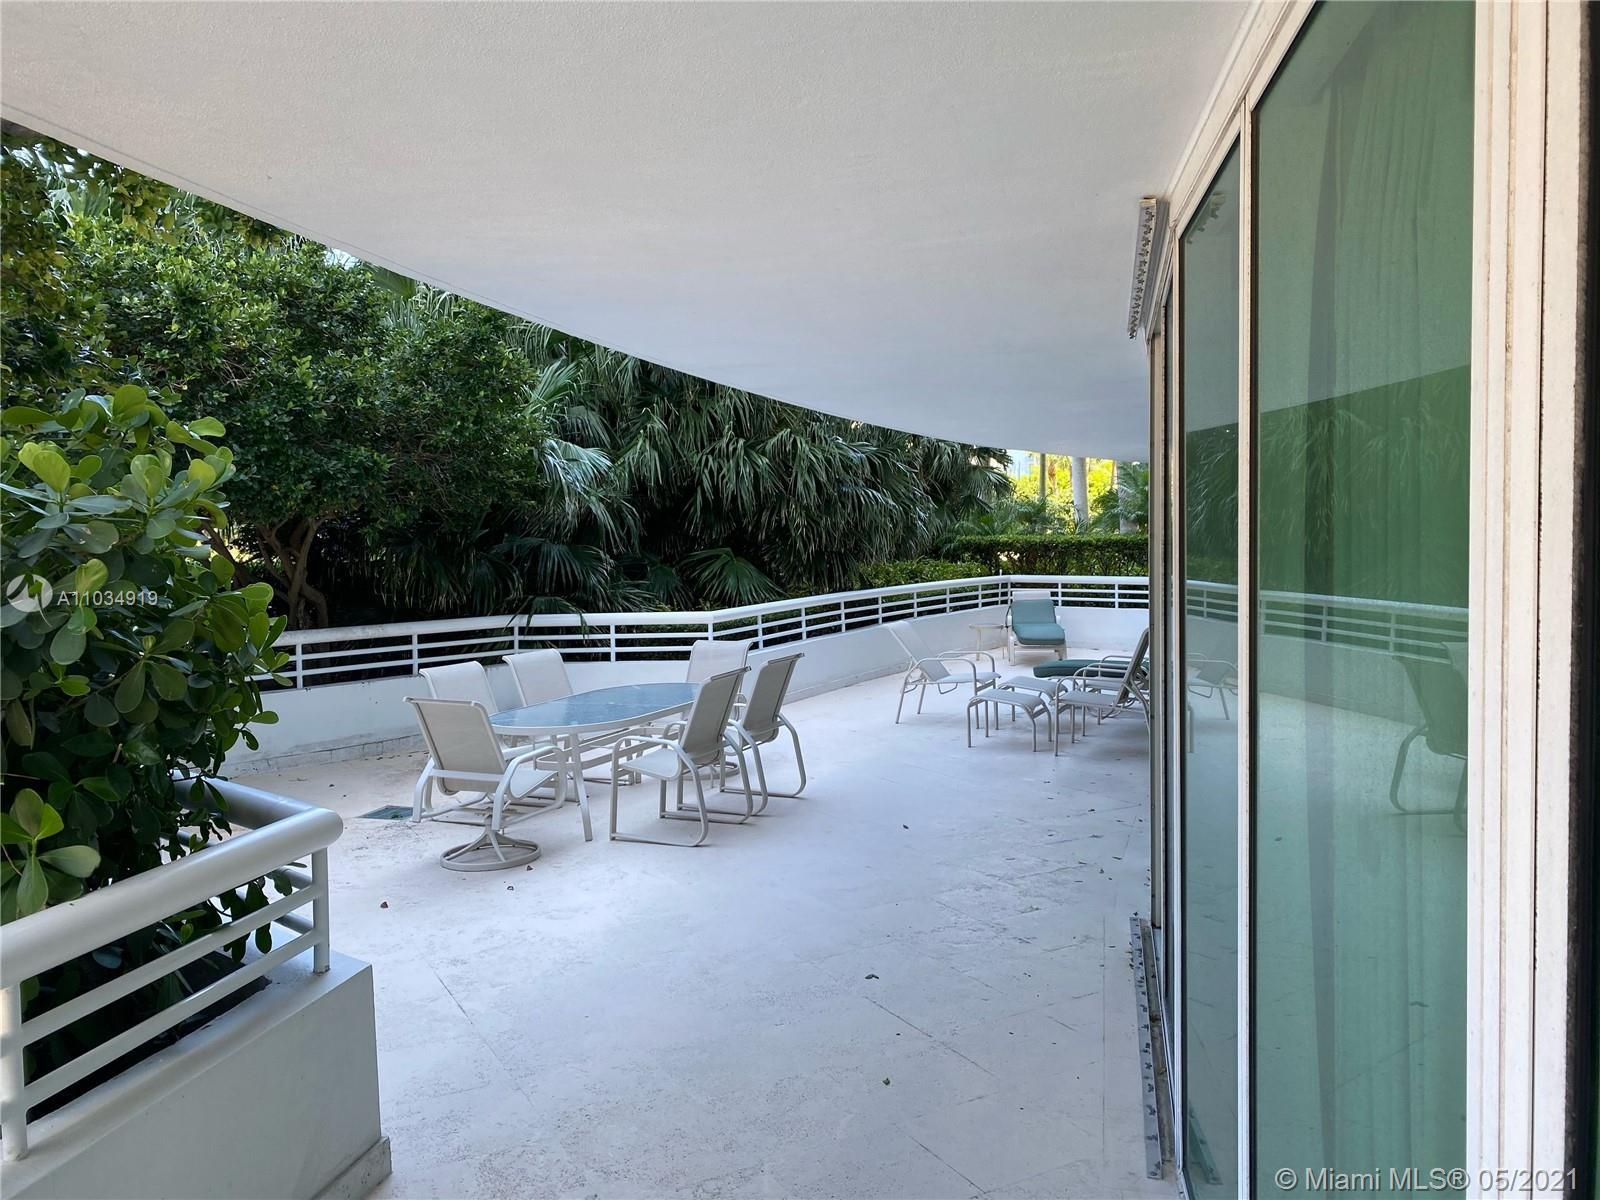 This luxurious 2 bedroom and 3.5 bath lanai unit has the largest terrace surrounded by lush greenery